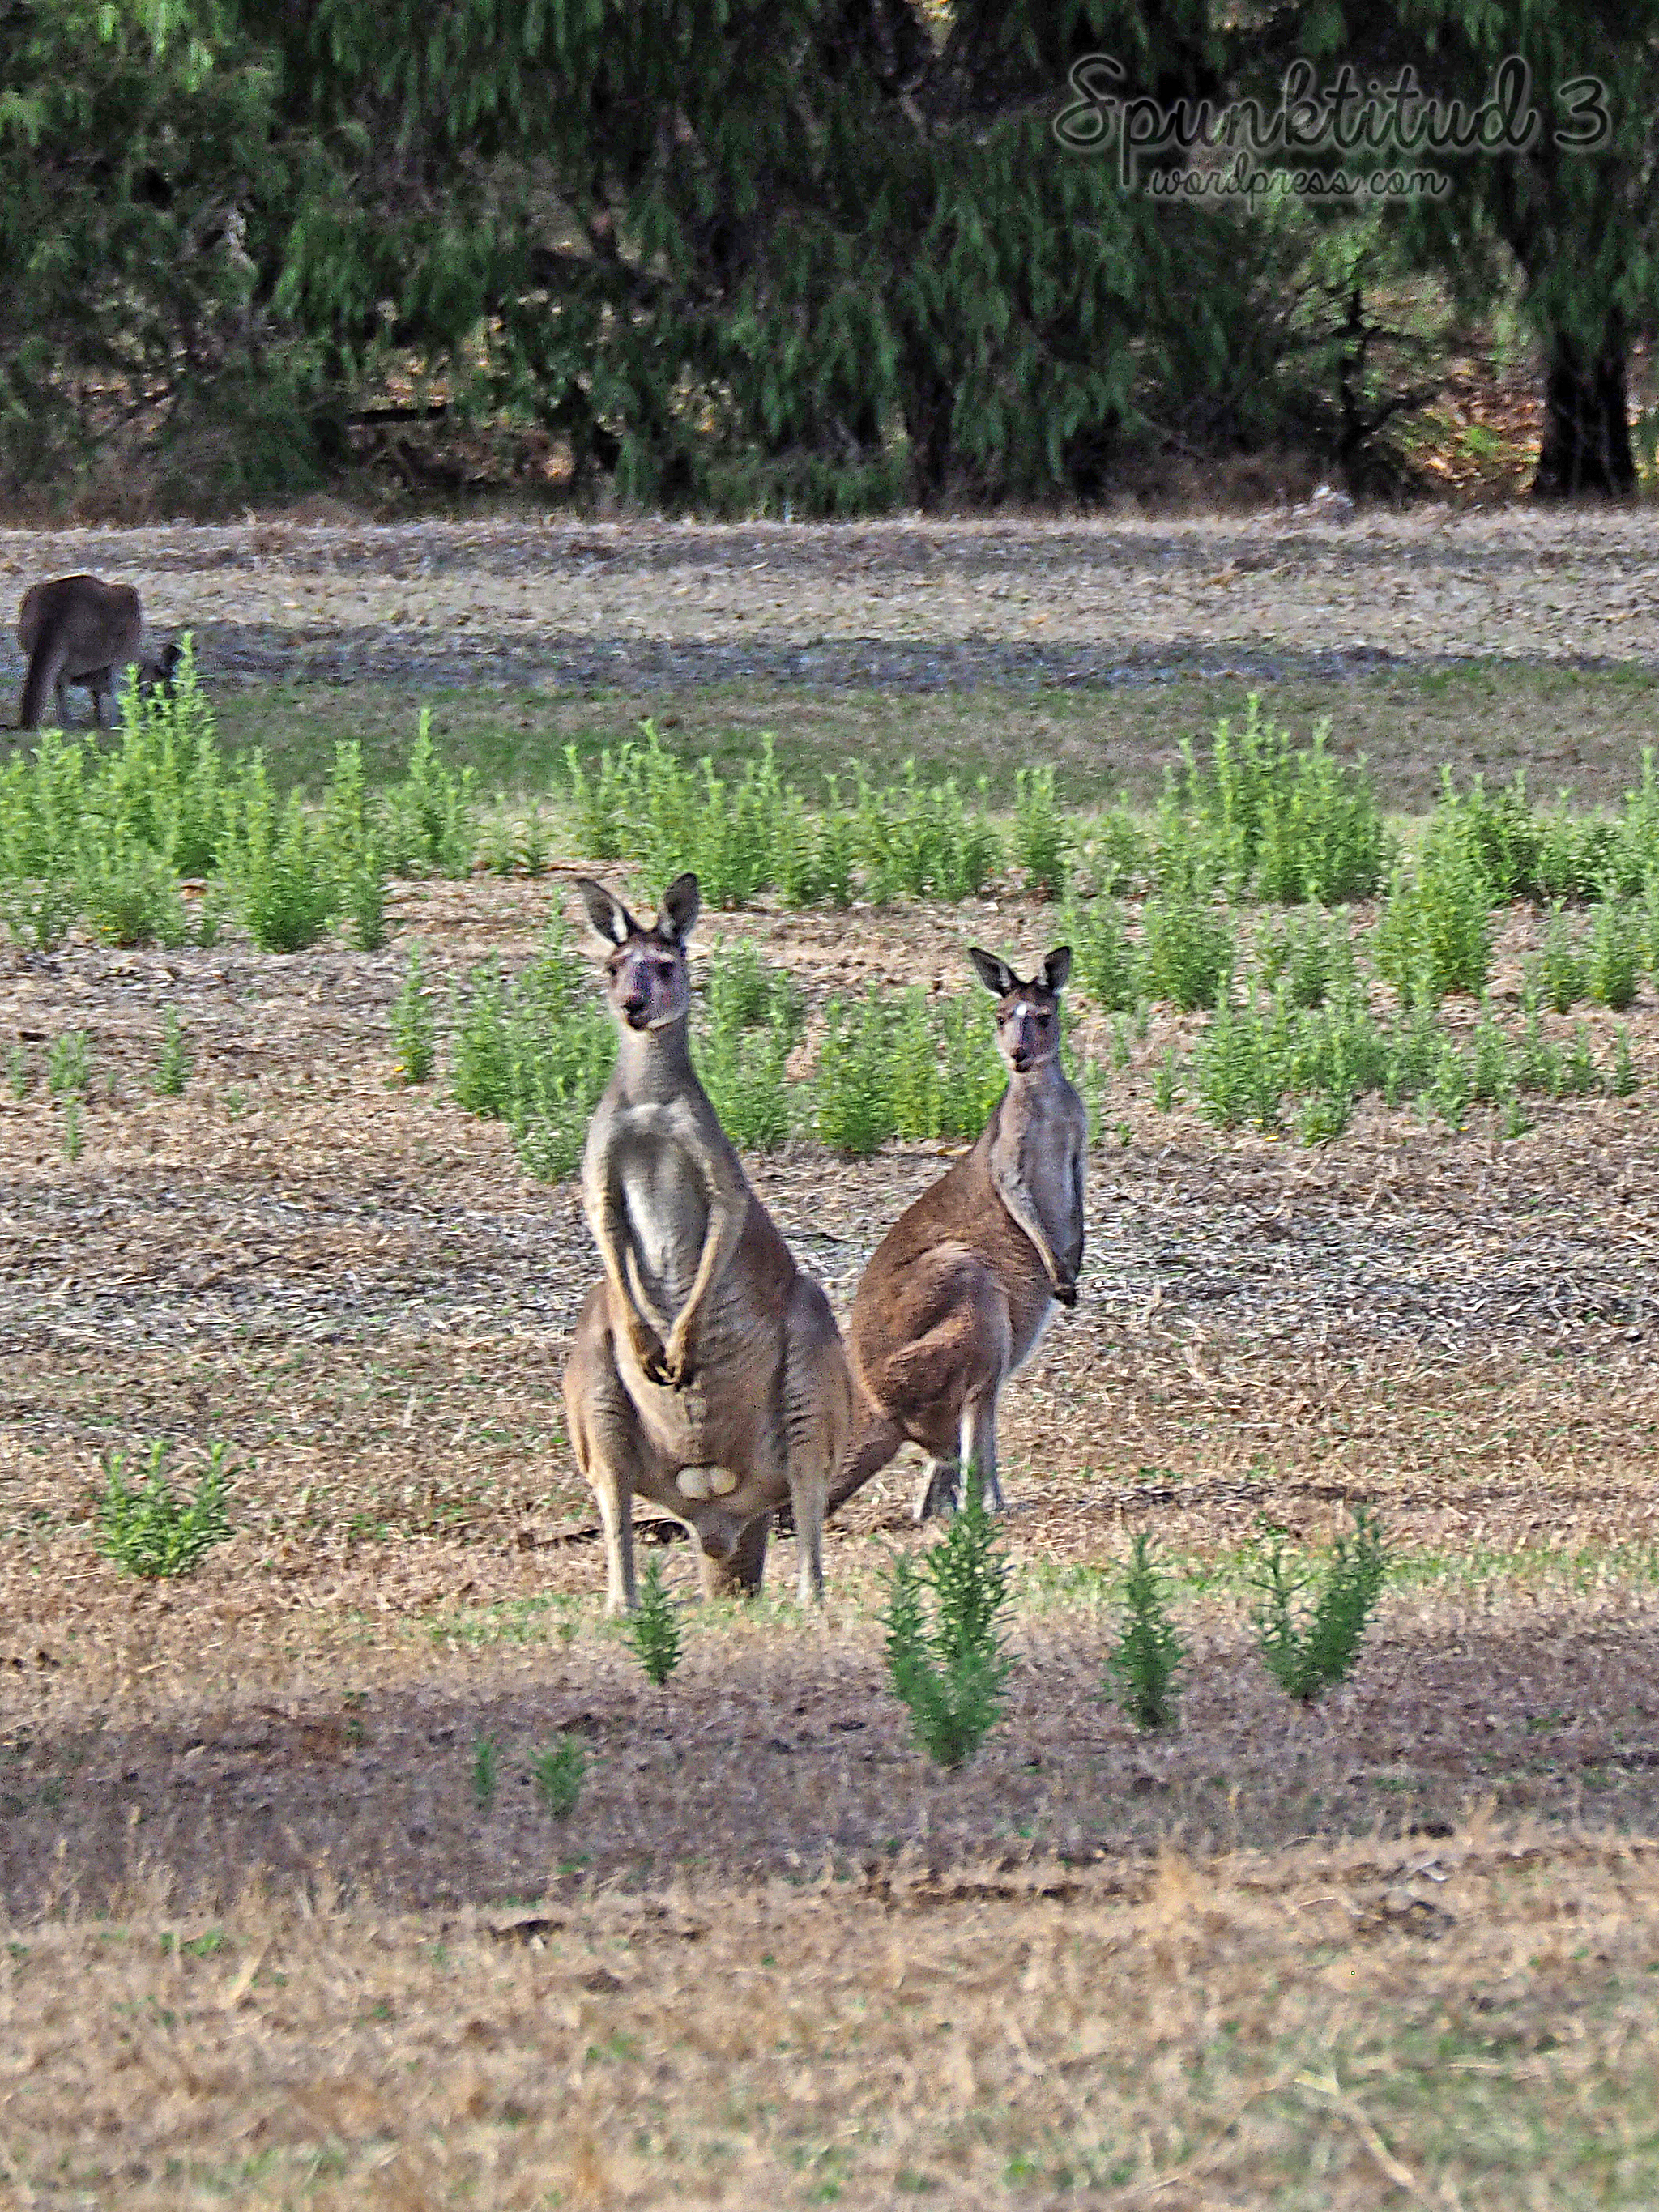 Wild Kangaroos in Perth